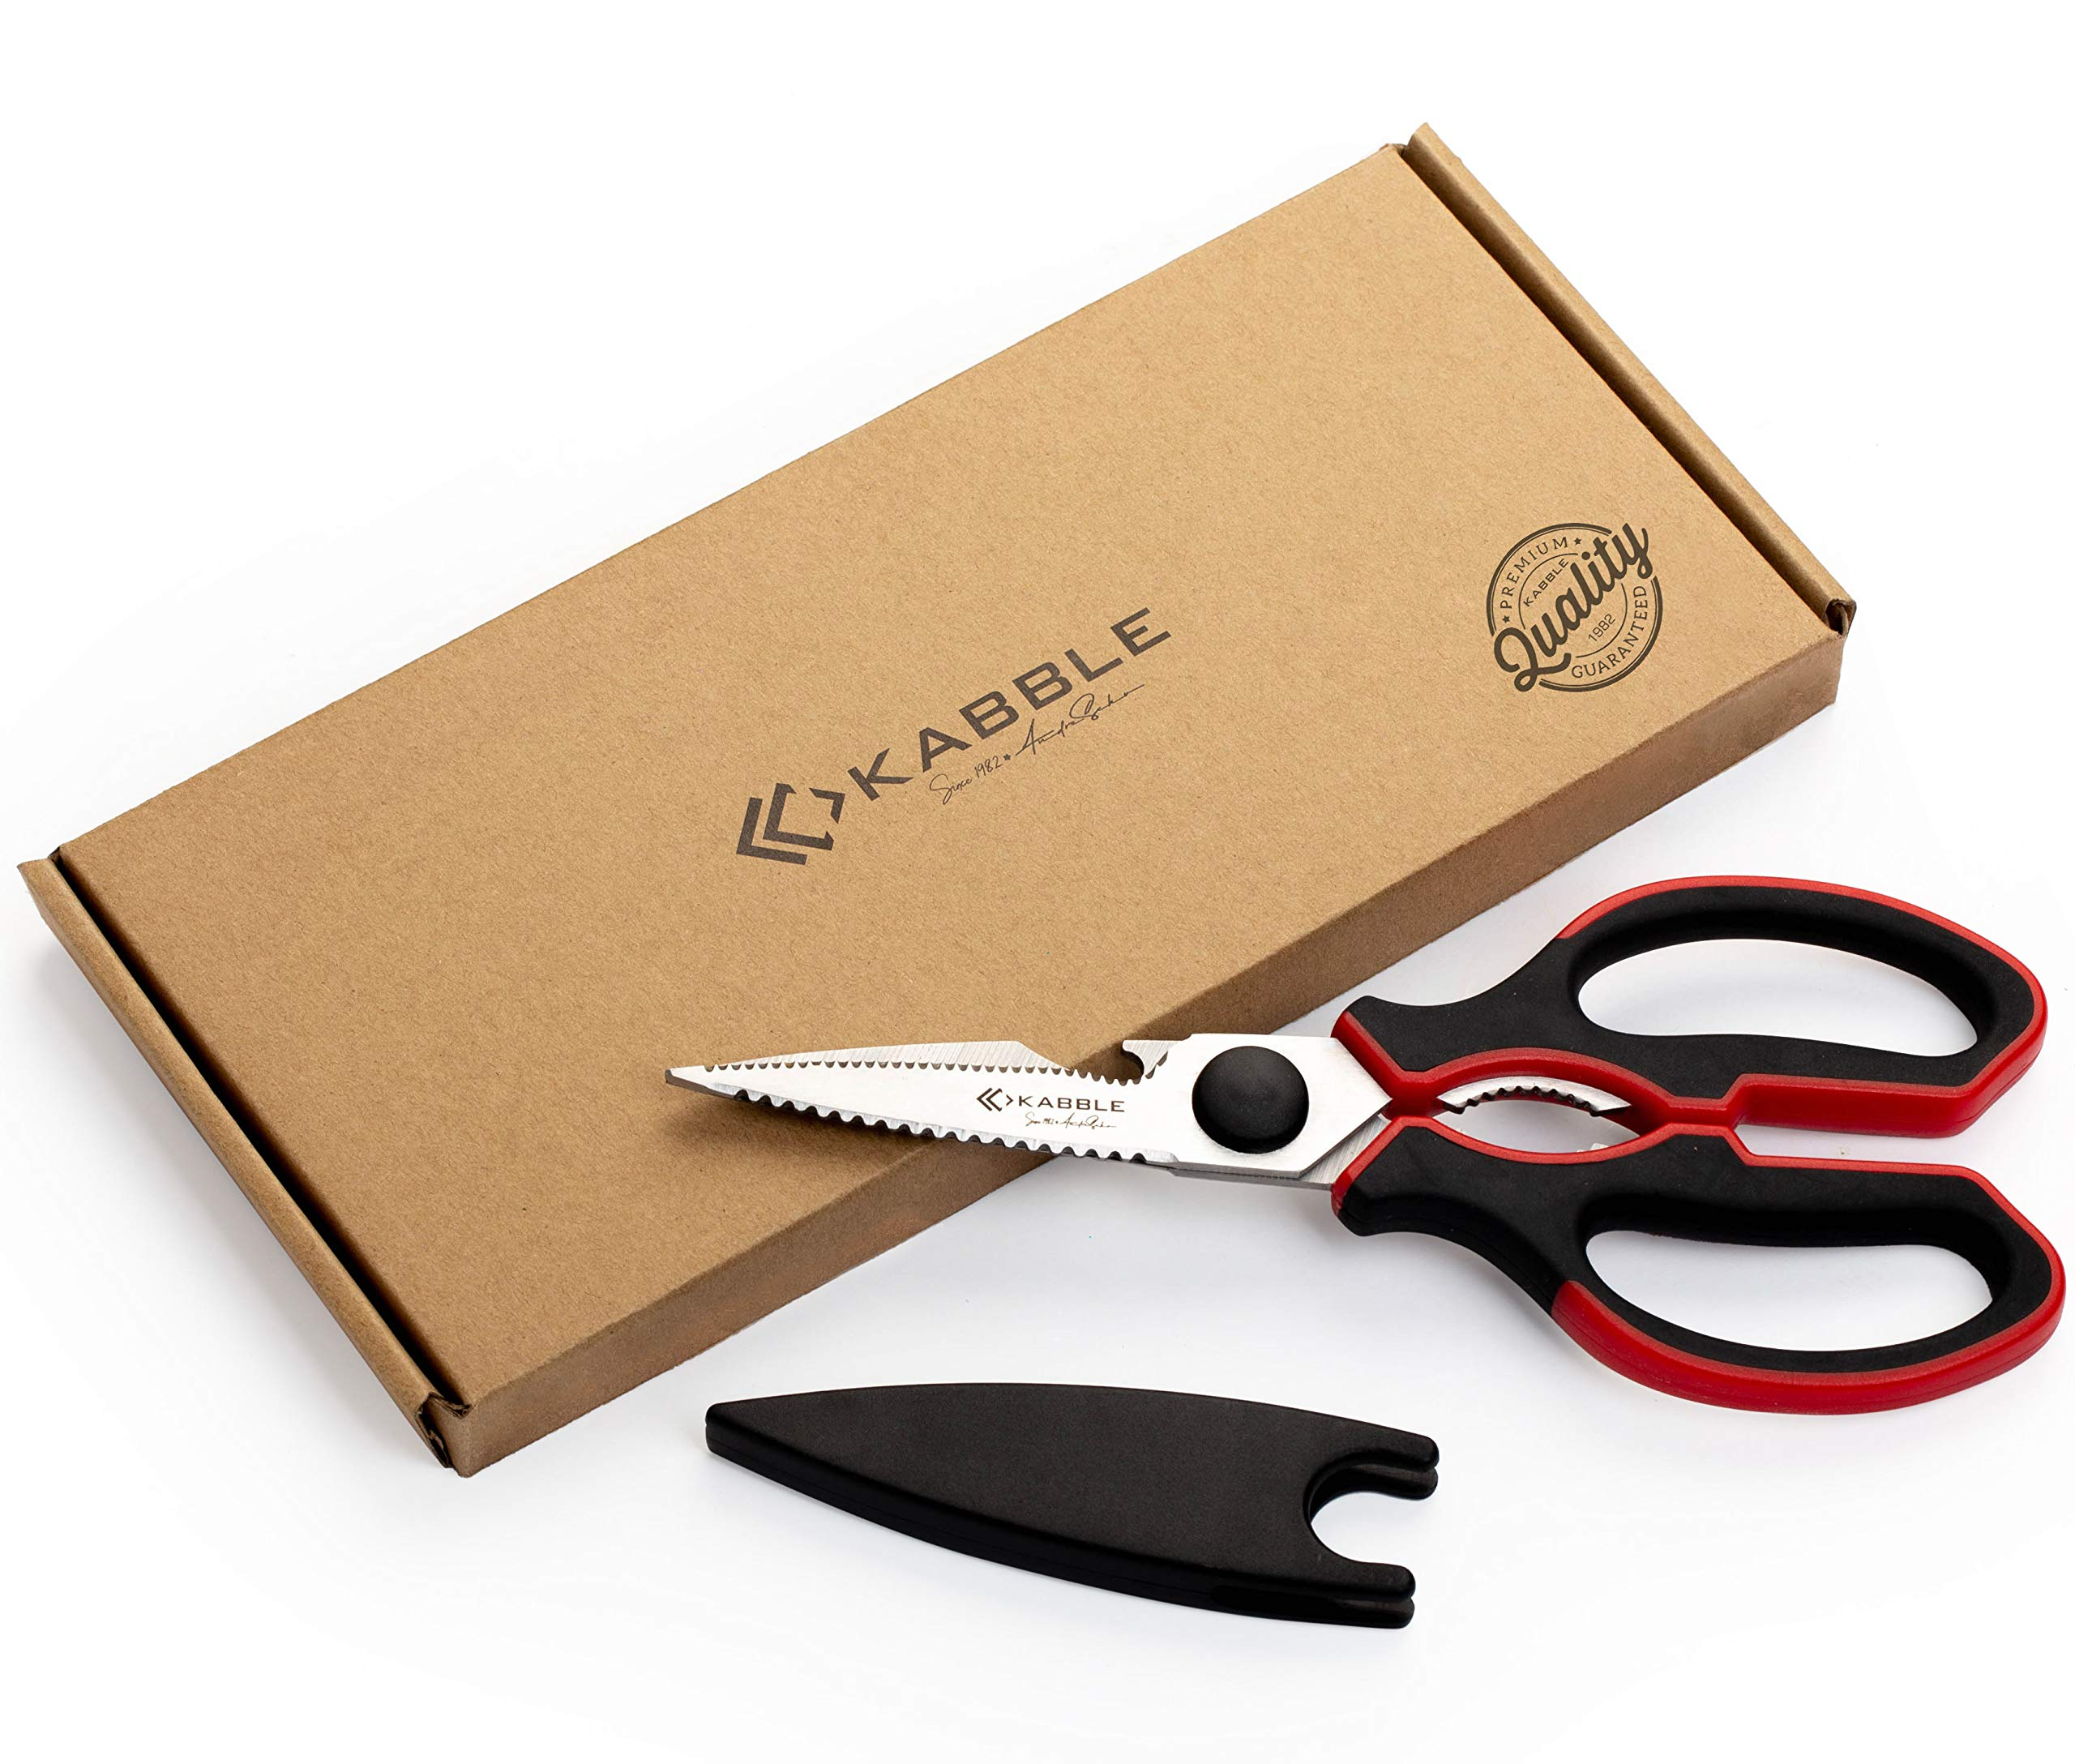 KABBLE Premium Heavy Duty Kitchen Shears, Multifunction Kitchen Scissors, Latest and Smart Designed, As Sharp As Any Knife, Black-Red by KABBLE